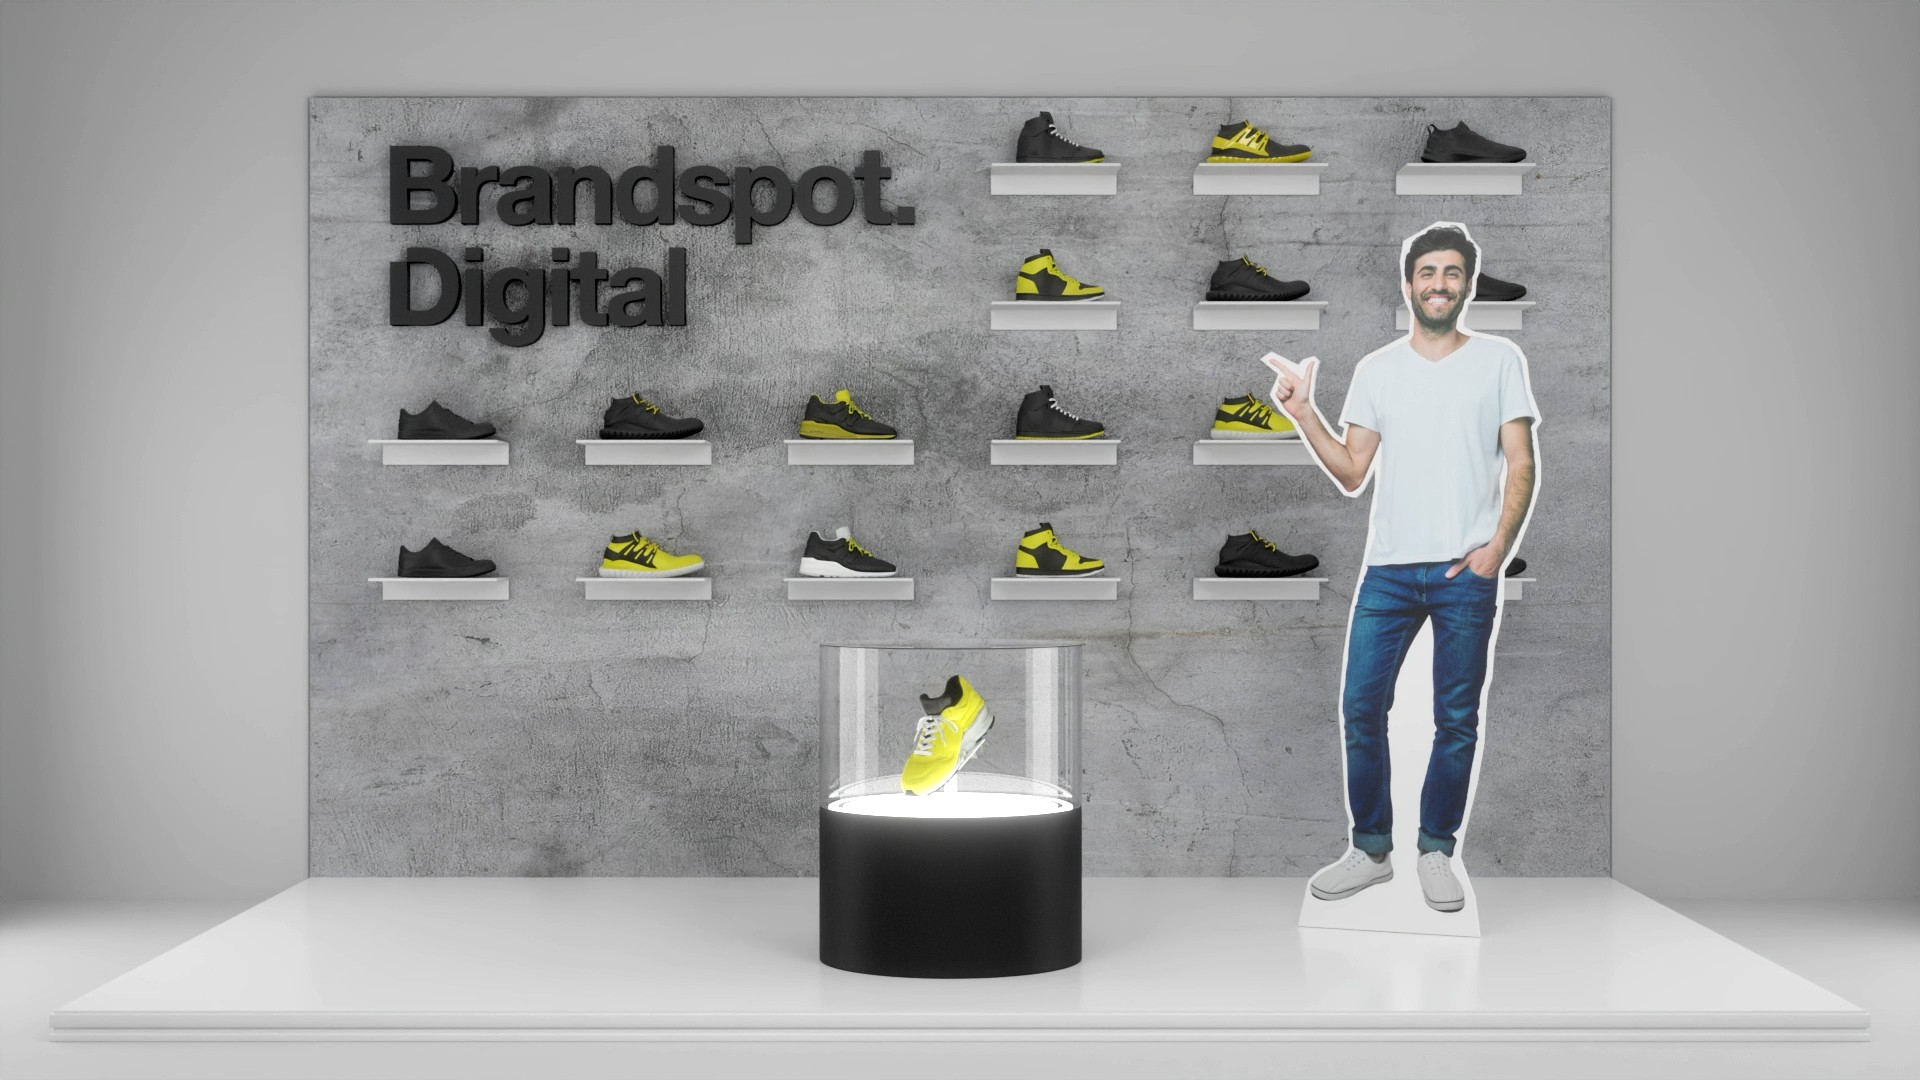 Rendering in 3D Brandspot Digital e lerning Video